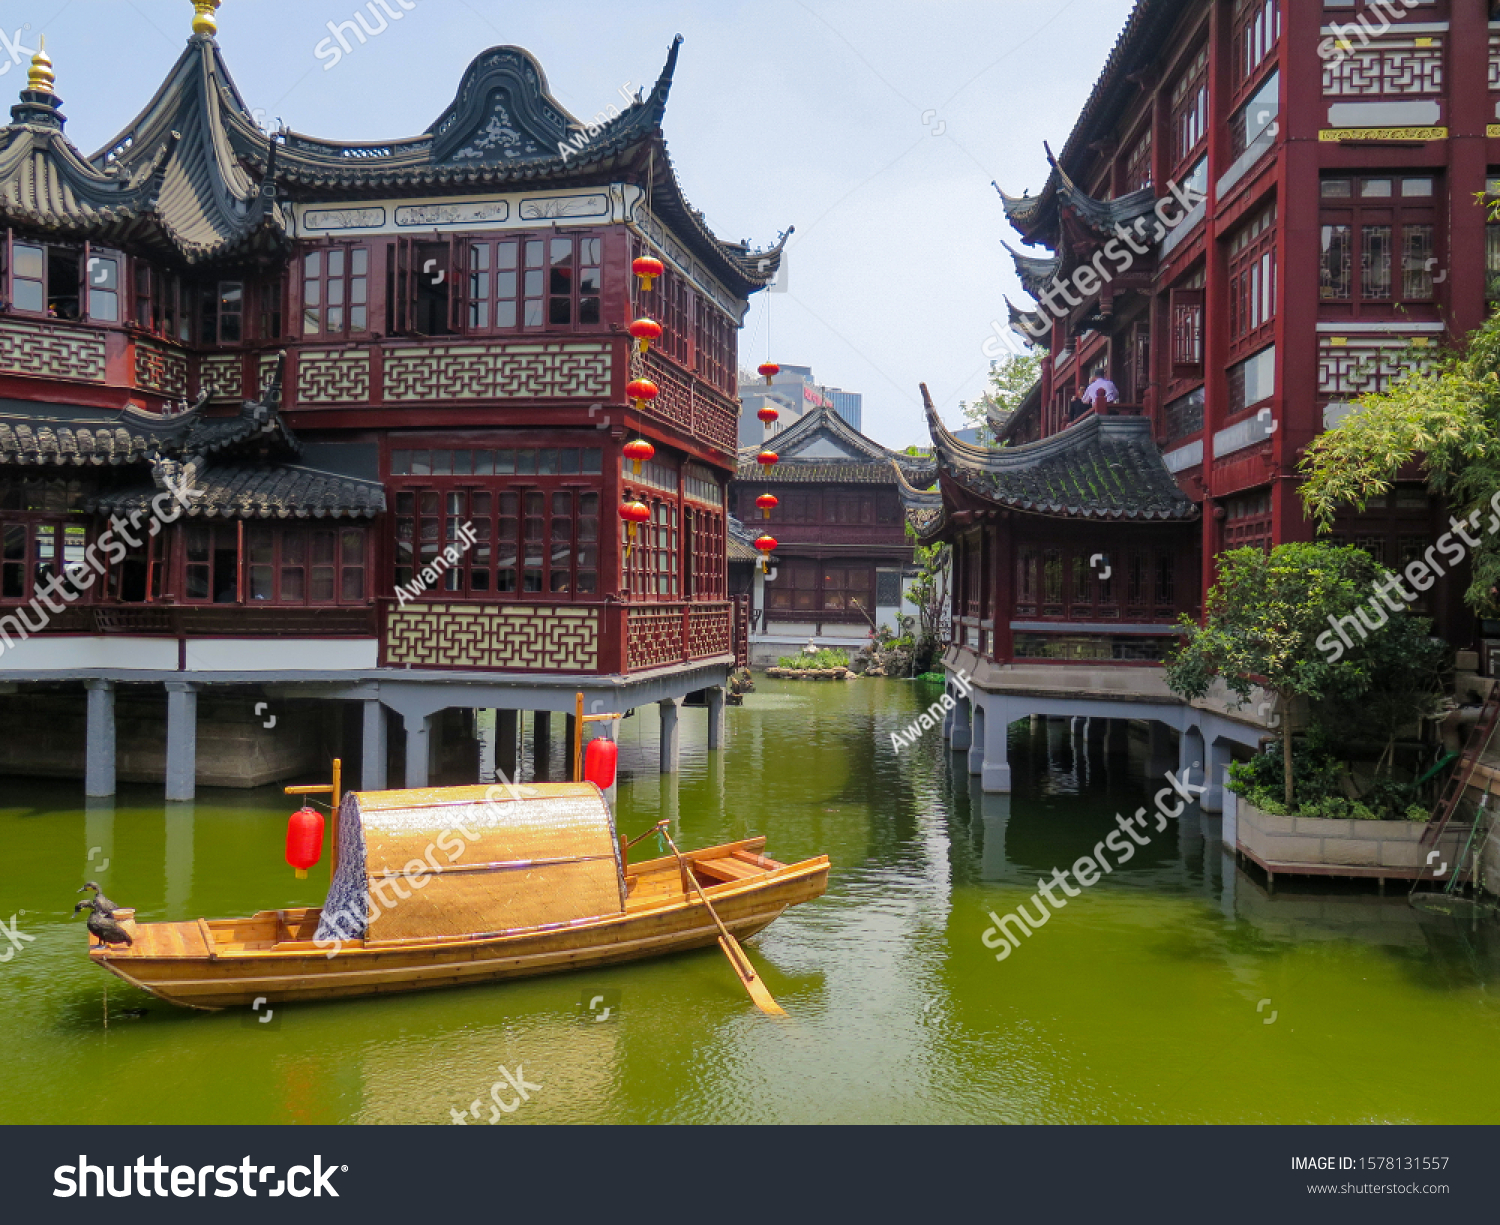 stock-photo-traditional-chinese-wooden-b